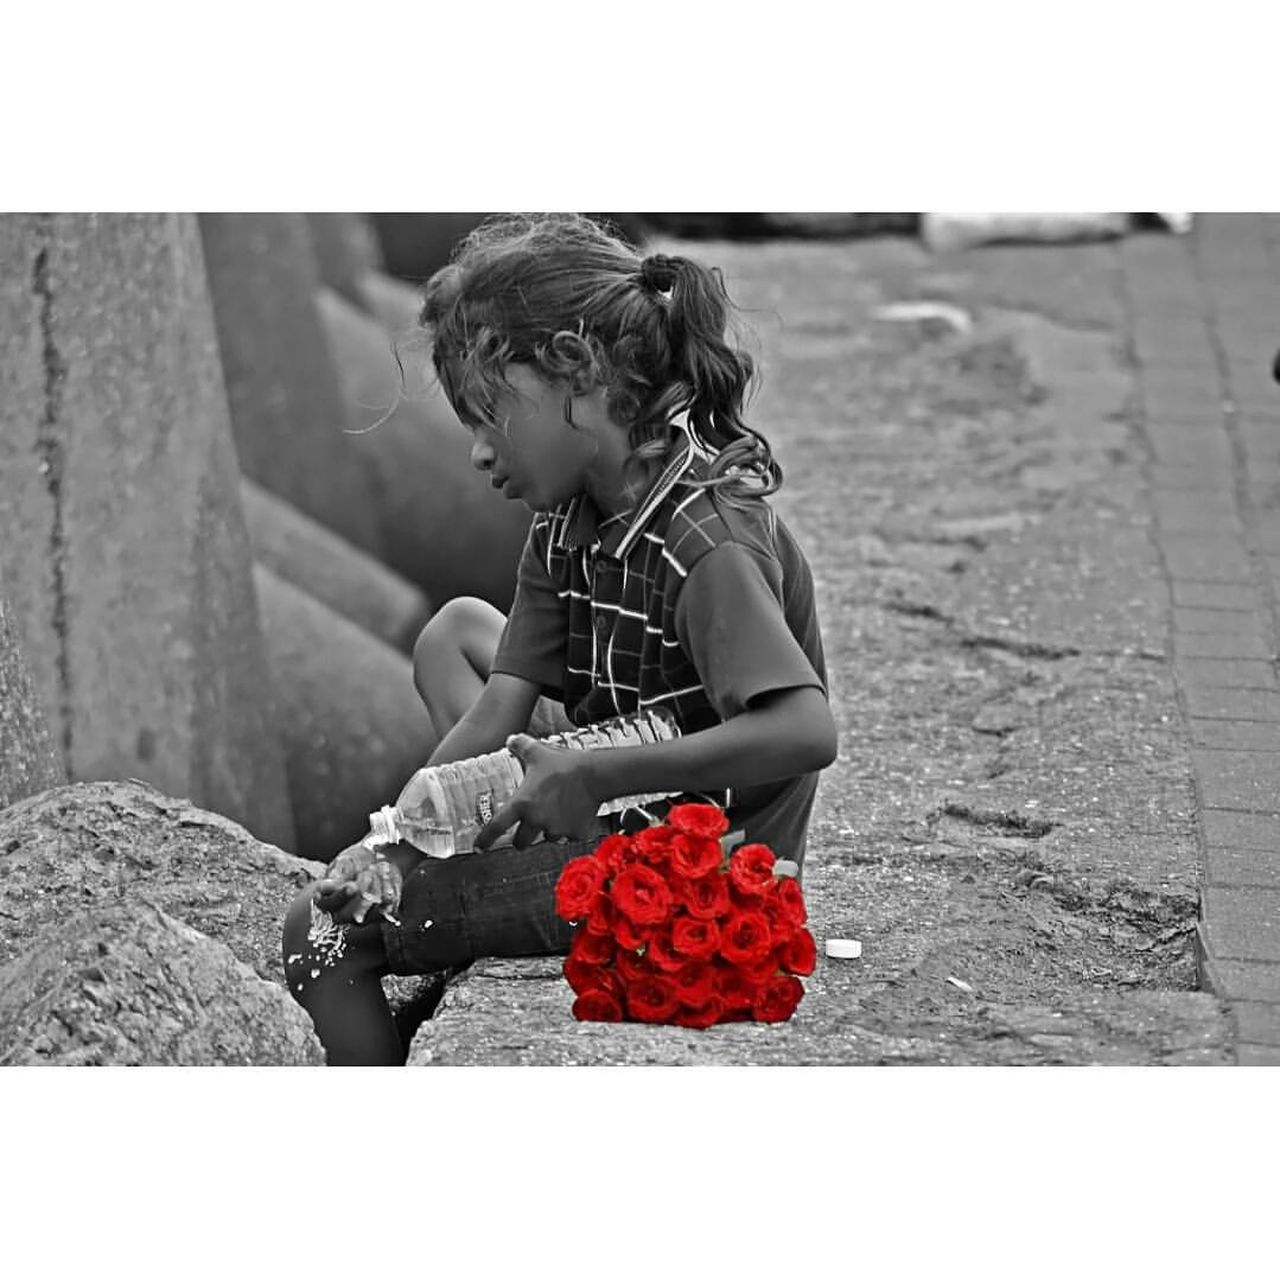 """Every rose has its own story"" literally the picture speaks all"" Some people don't get what we have and some people just wants to get rid off of what we want! This is life..... #Pain BeTHANKFUL Cry Emotions Helplessness Karma Nolaughter Painfulmemories RespectYourself Roses Uniqueness Adapted To The City"